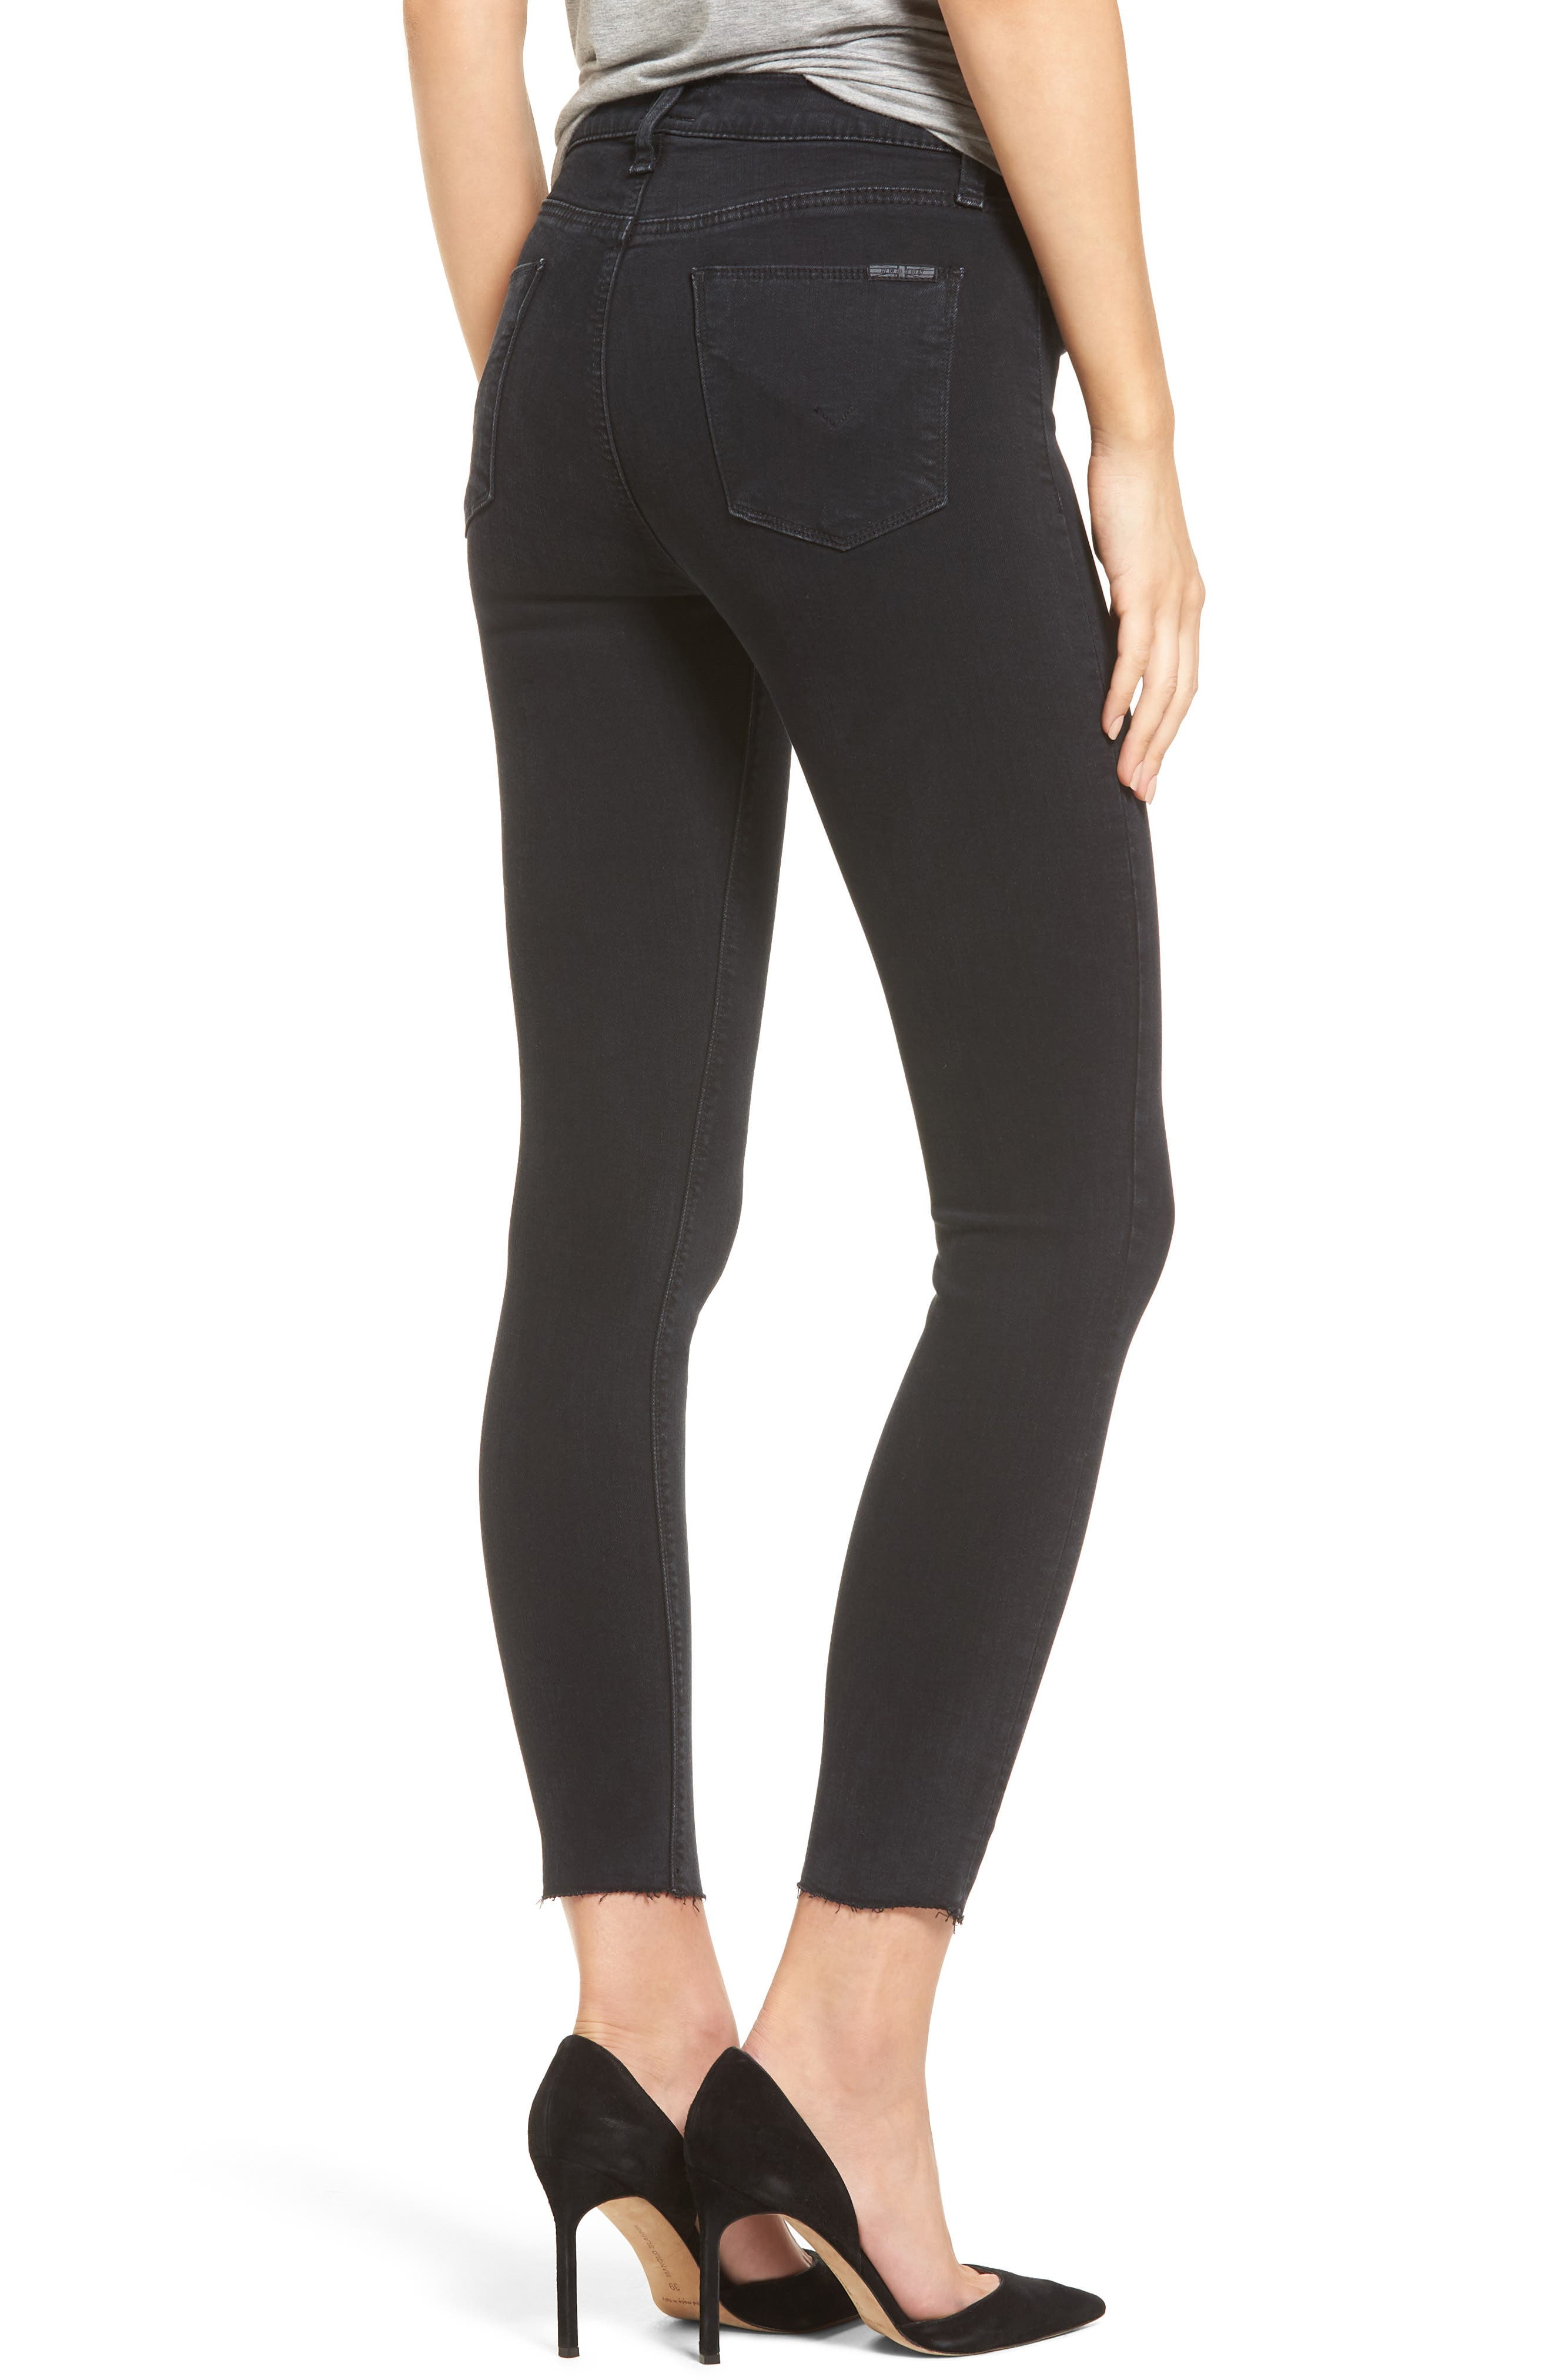 Barbara High Waist Ankle Skinny Jeans,                             Alternate thumbnail 2, color,                             001